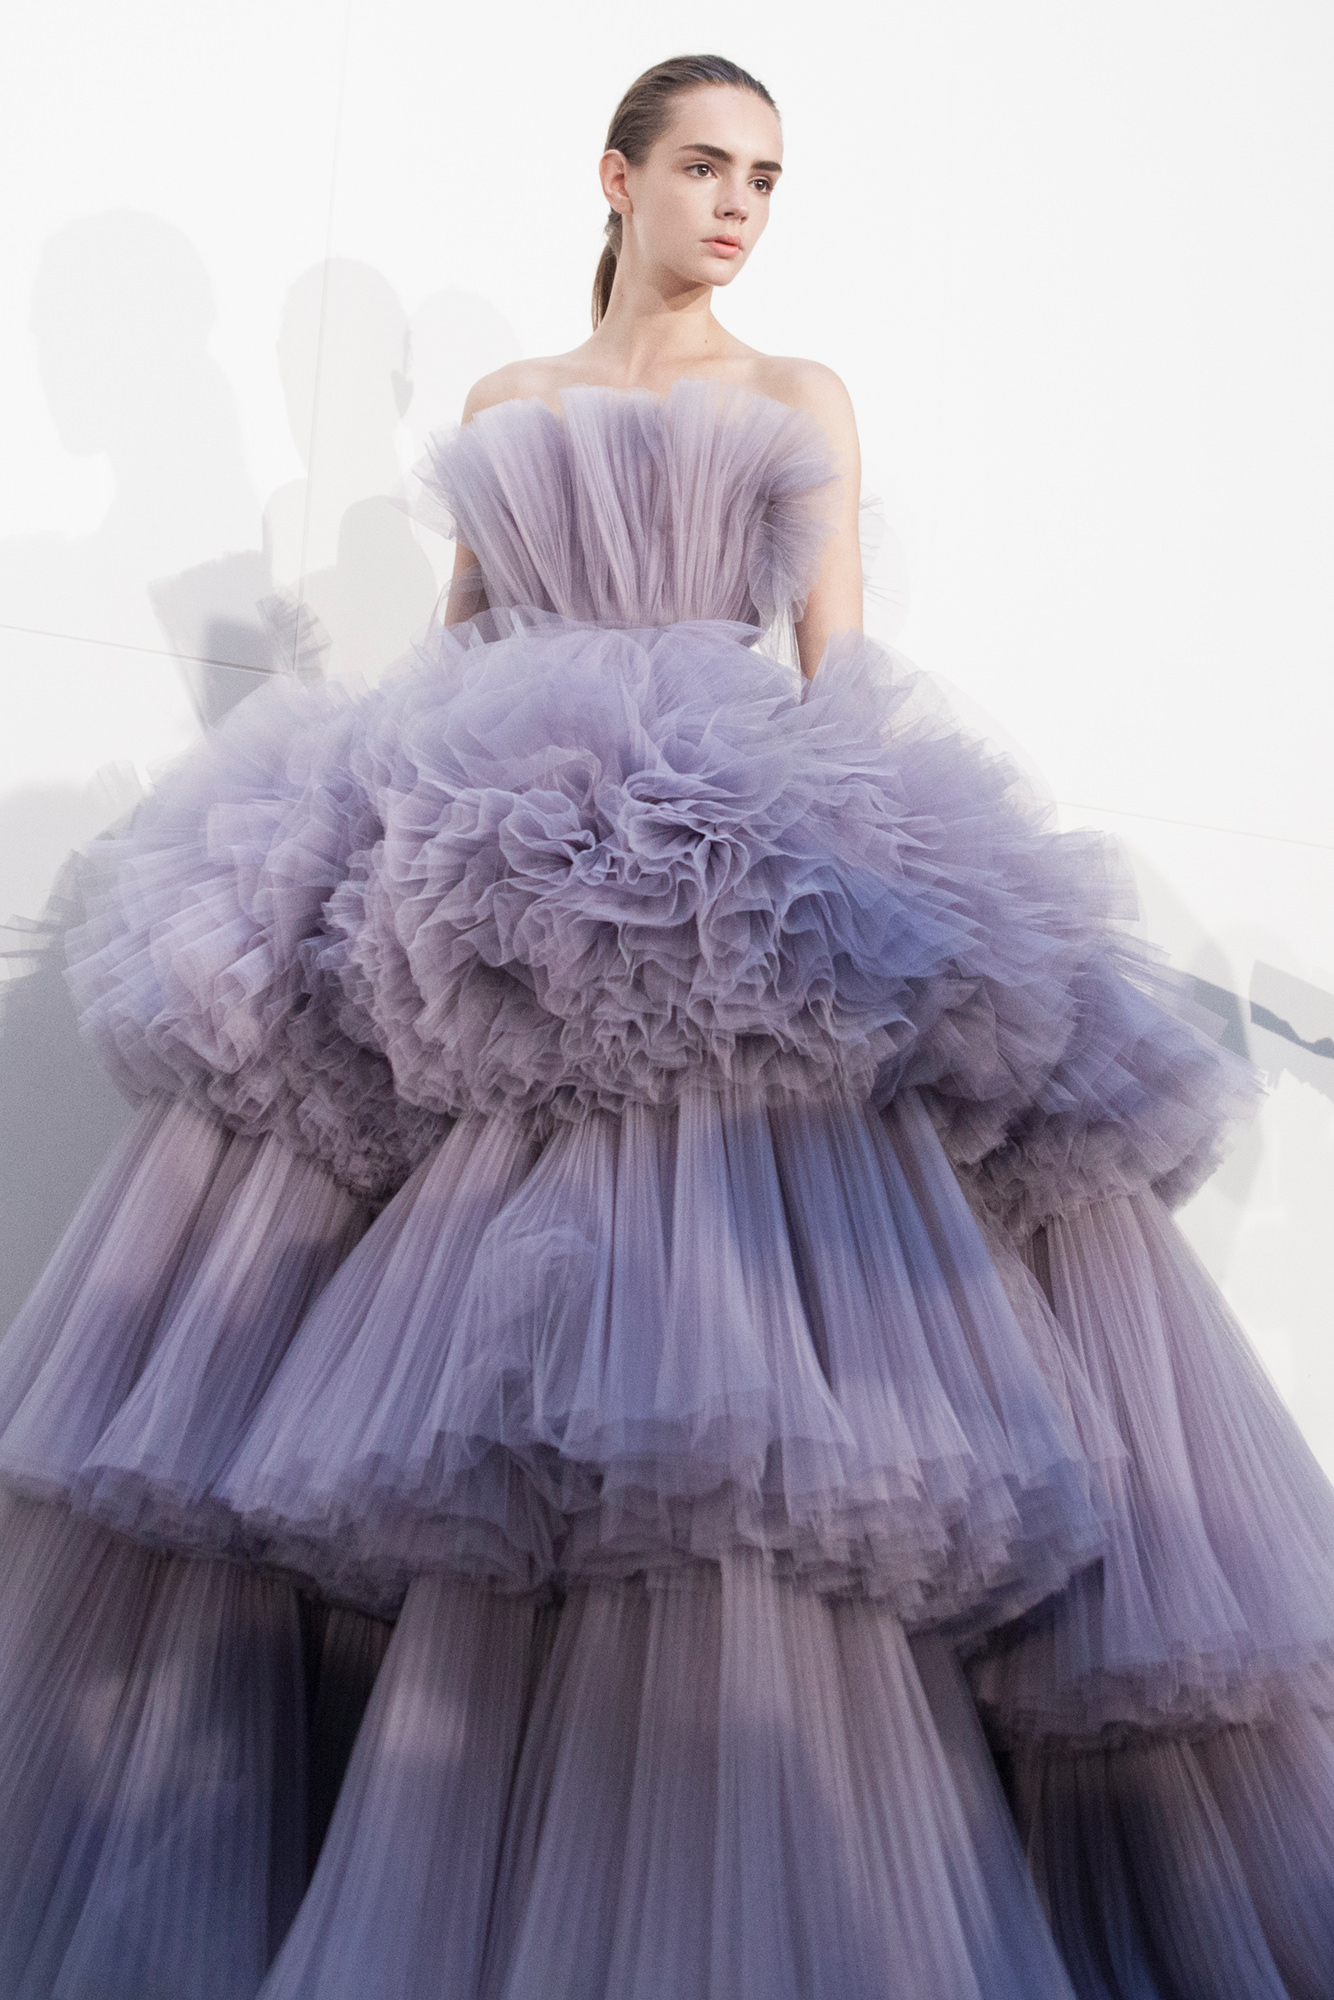 Giambattista Valli fall-winter 2016-2017 haute couture runway show